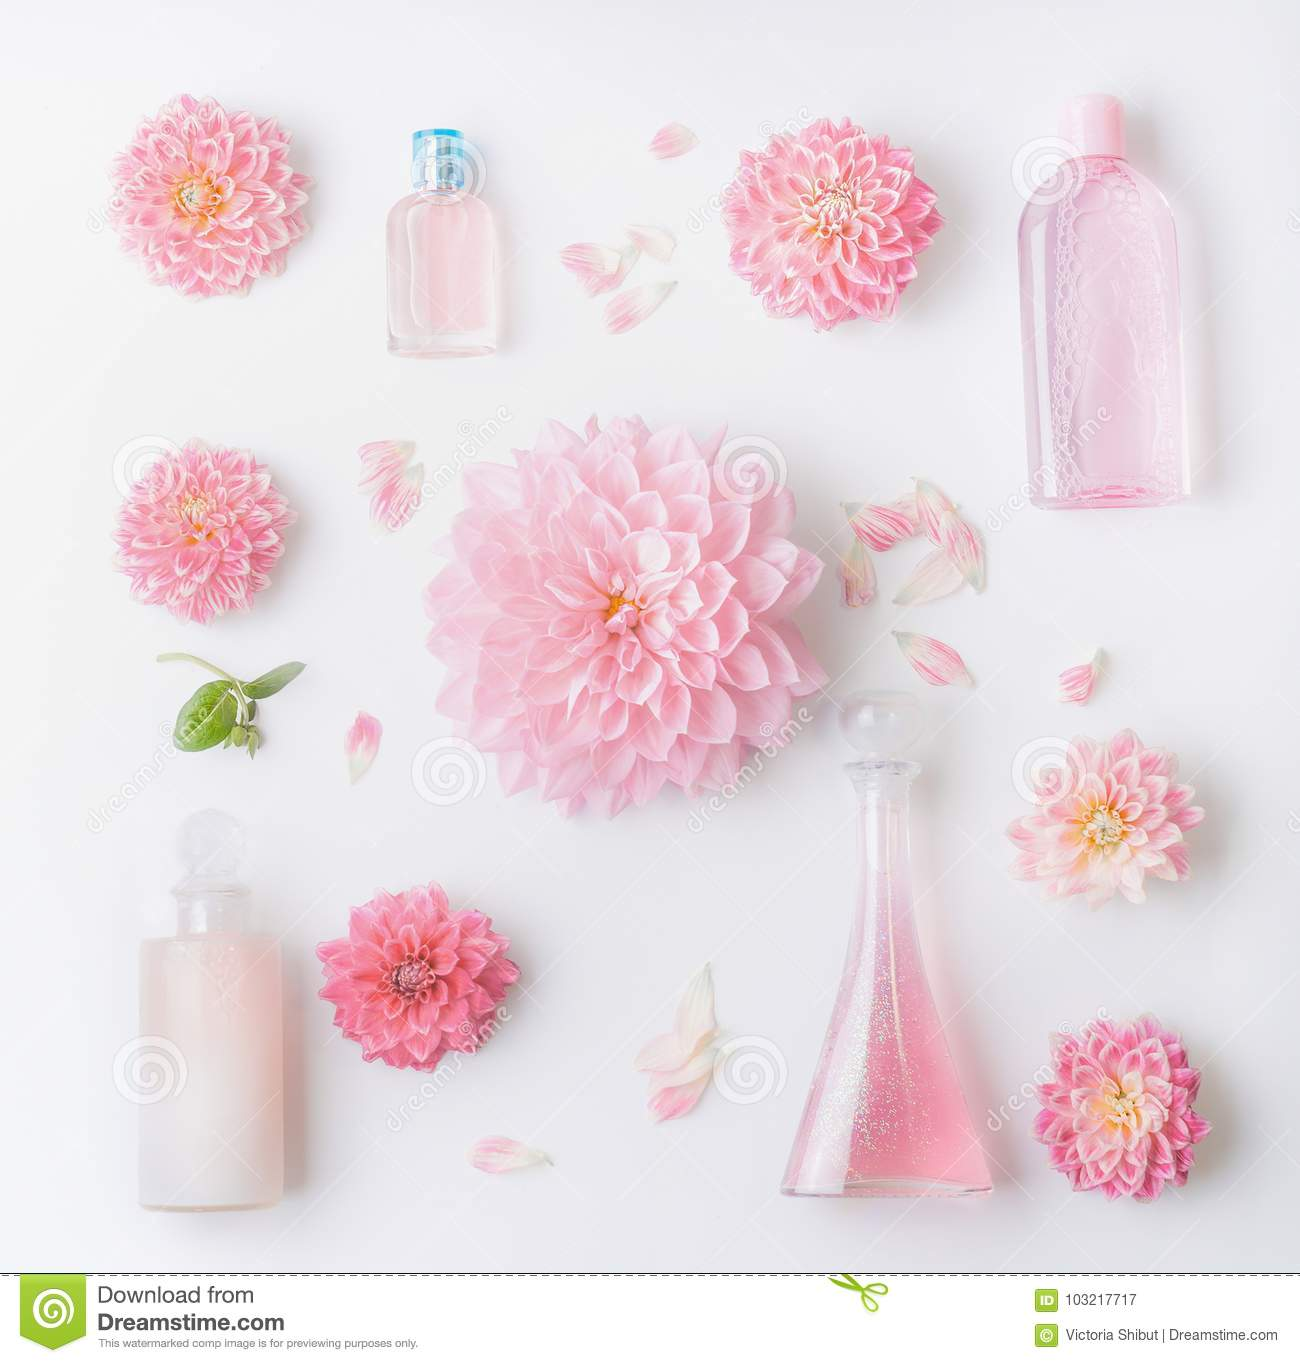 Pastel Pink Natural Cosmetic Products Setting Flat Lay With Pretty